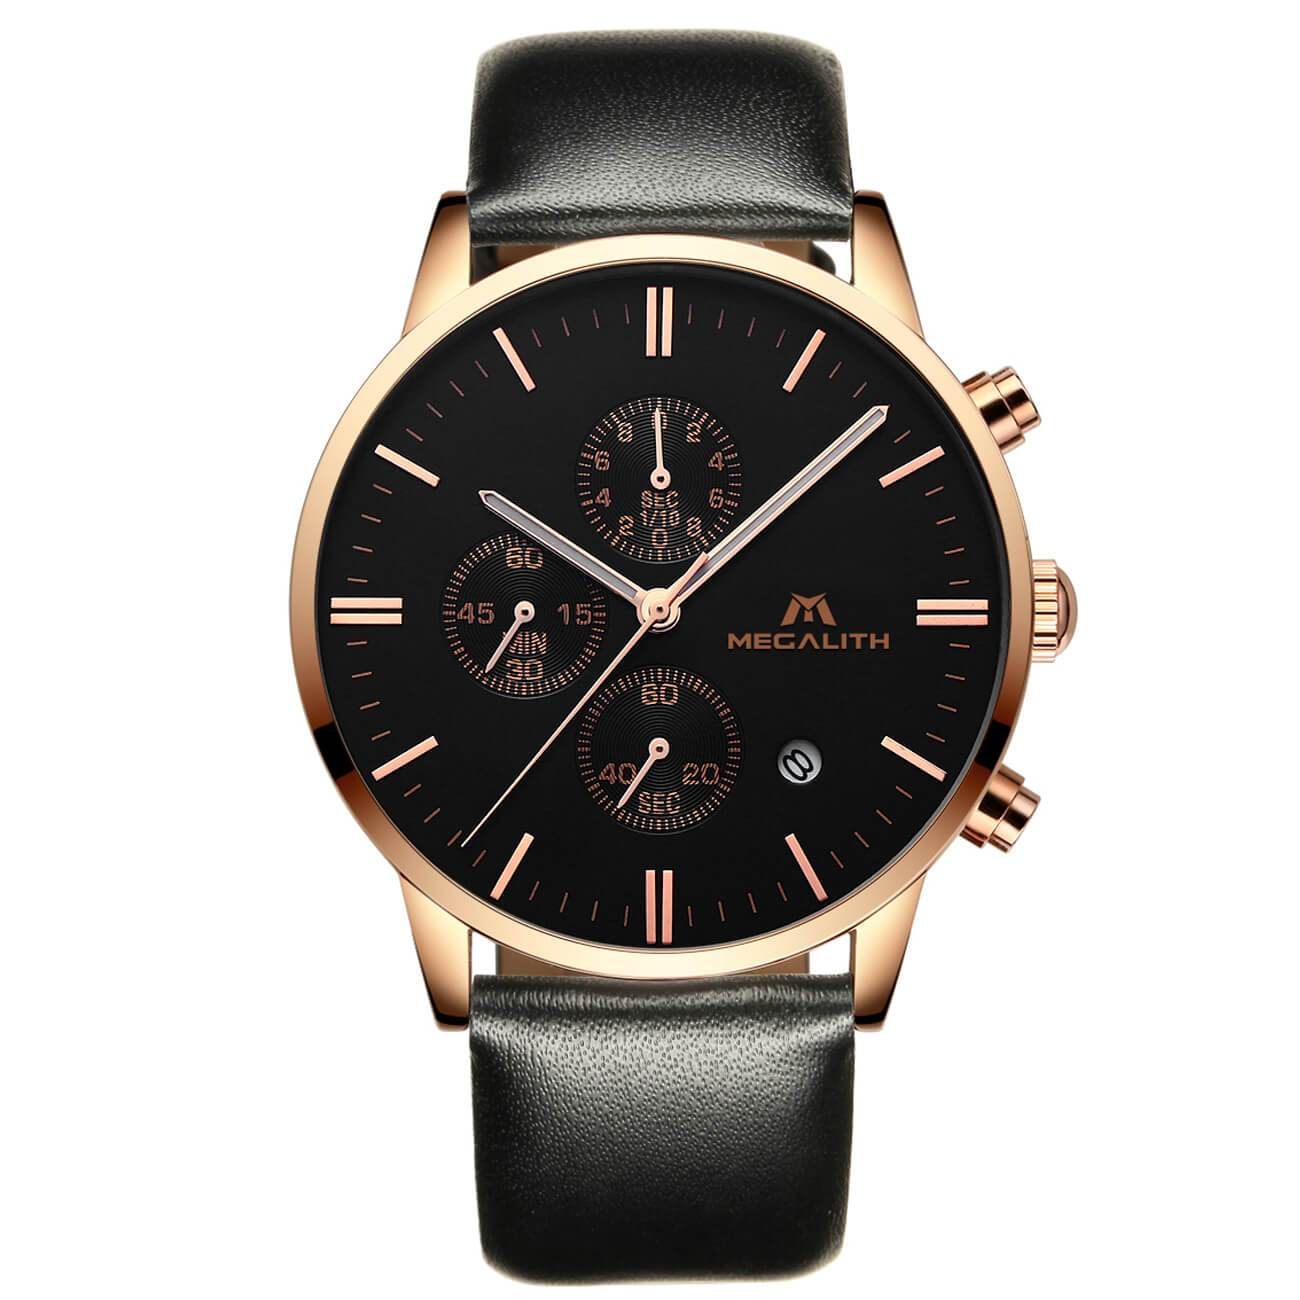 0135M | Quartz Men Watch | Leather Band